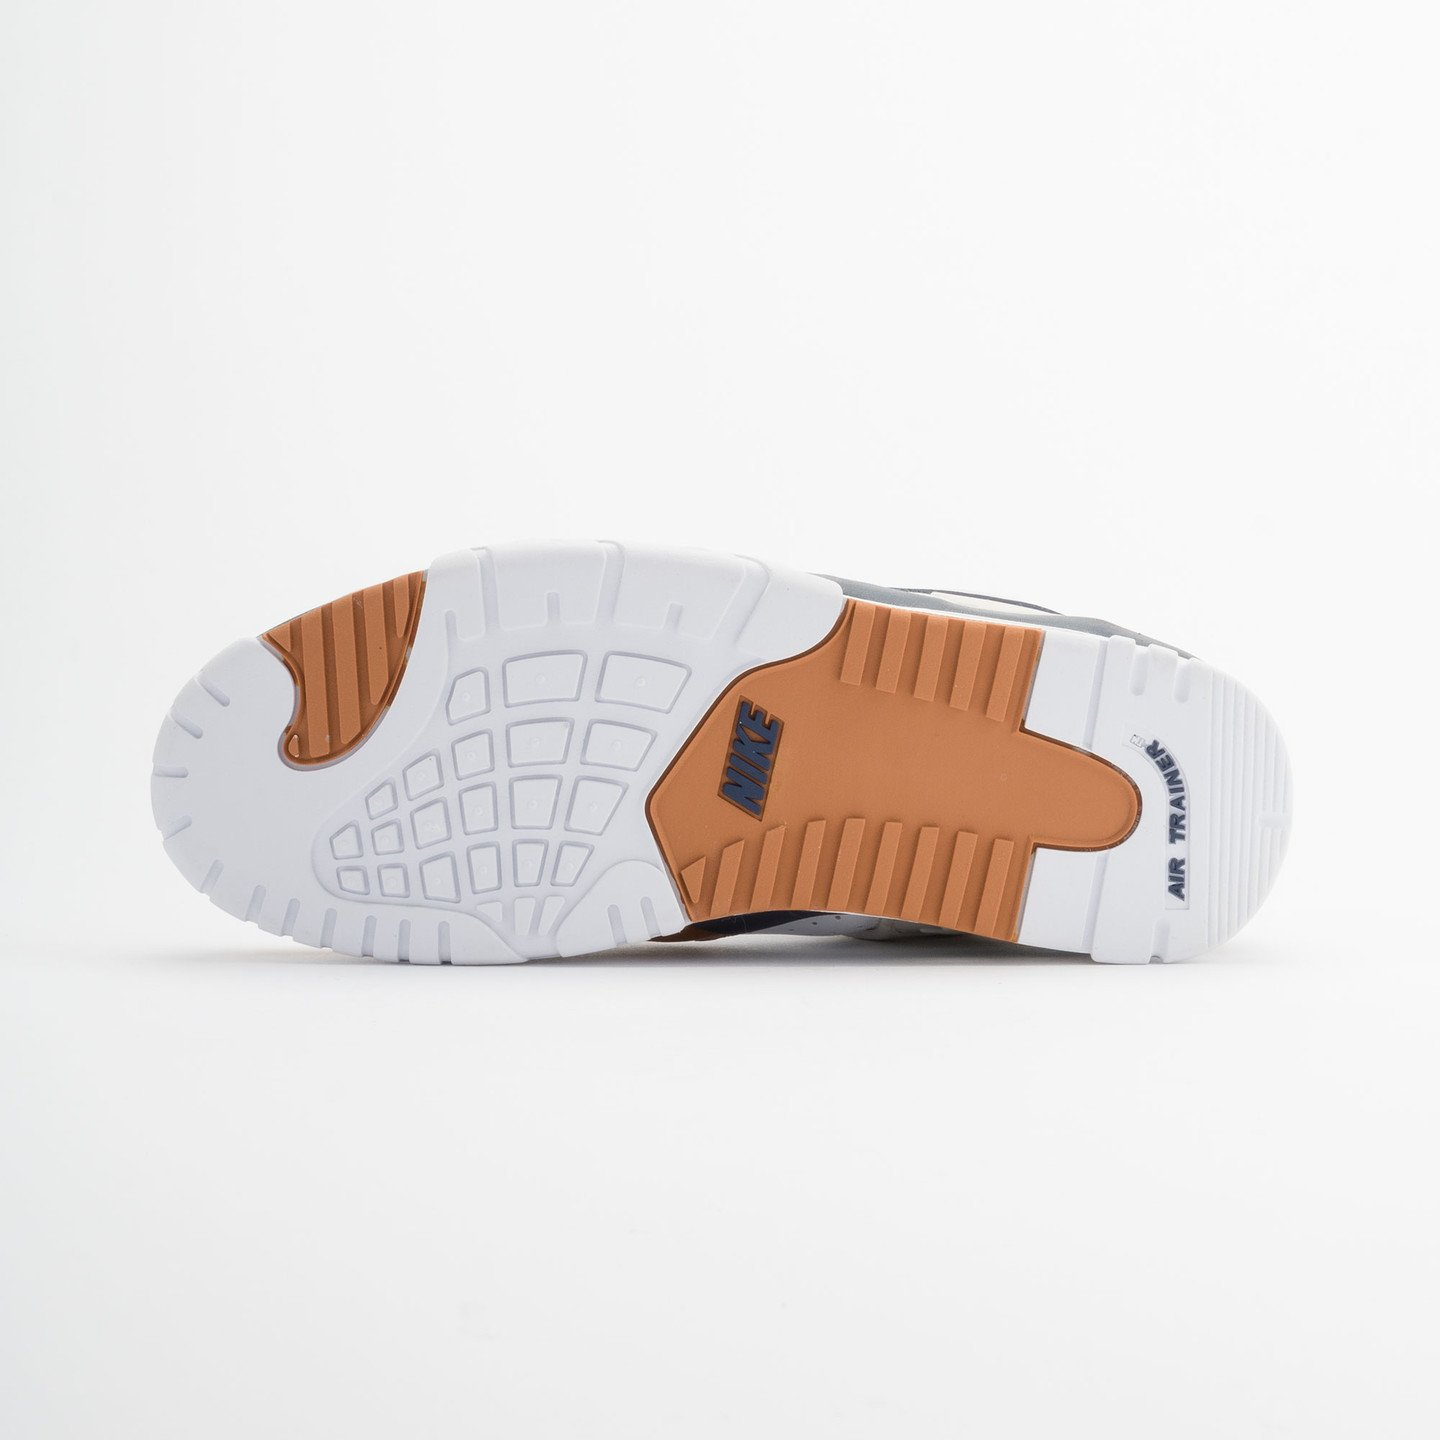 Nike Air Trainer 3 Premium Medicine Ball White/Mid Navy-Gngr-Lght Bn 705425-100-48.5